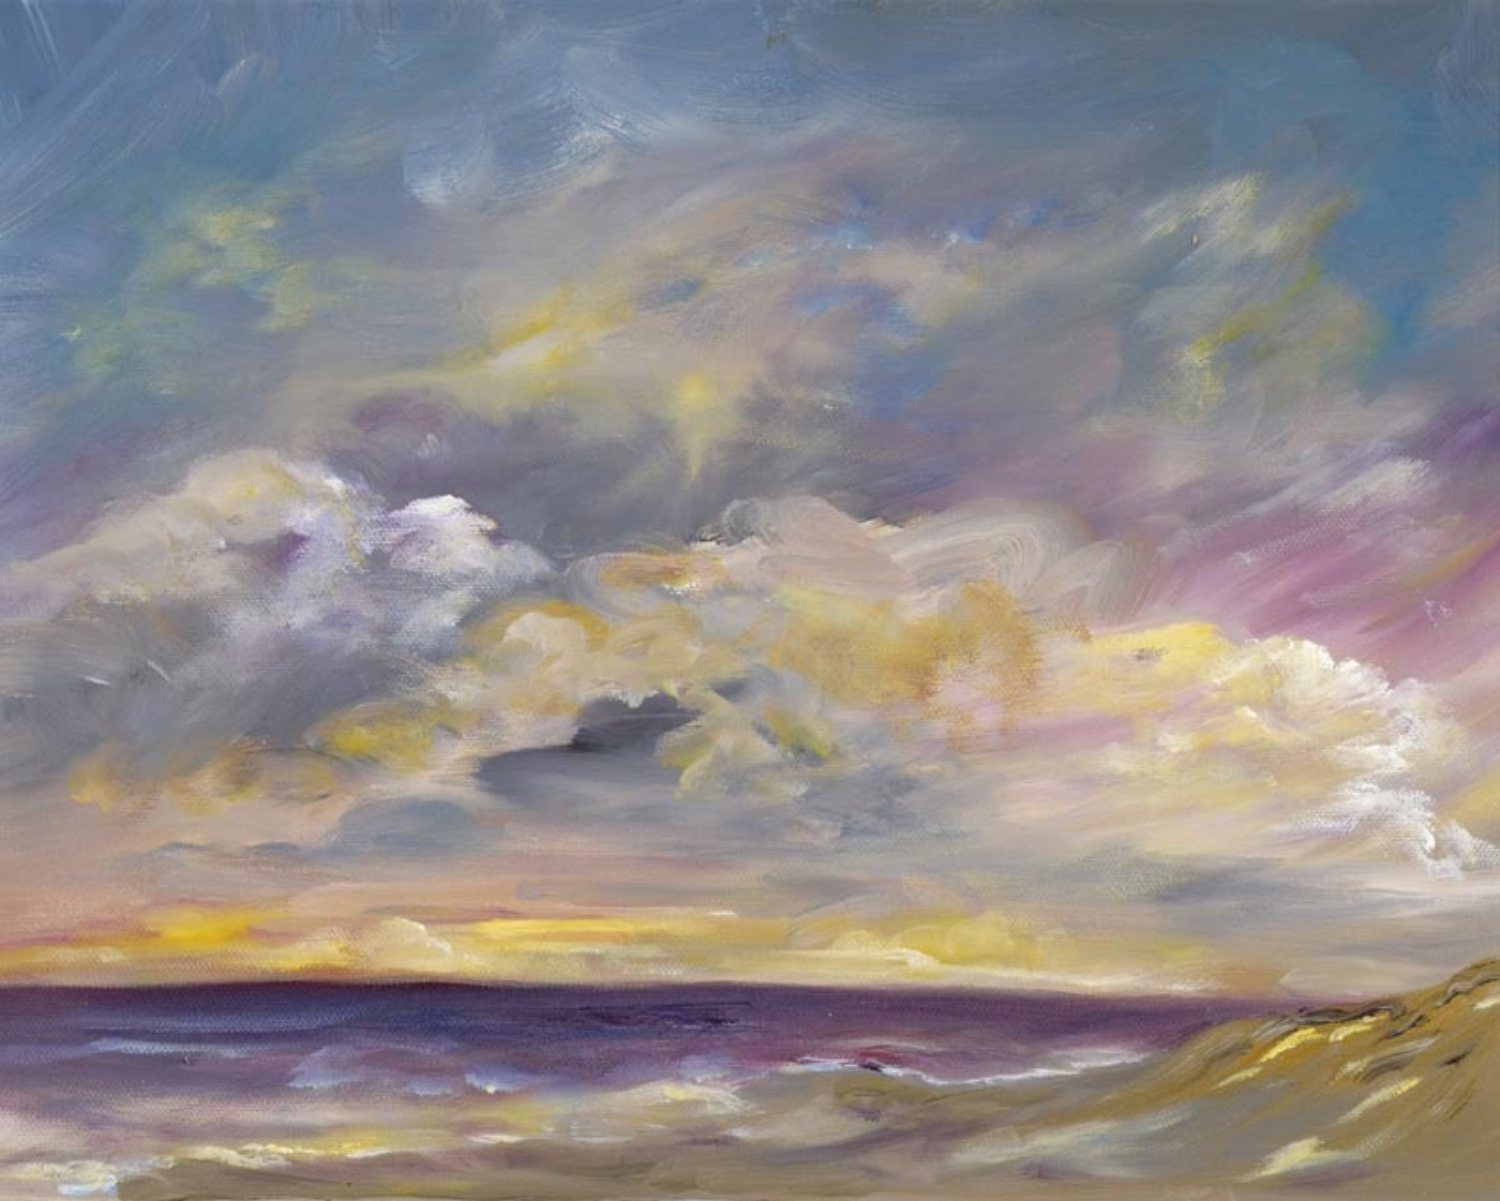 STORM'S END - SOLD